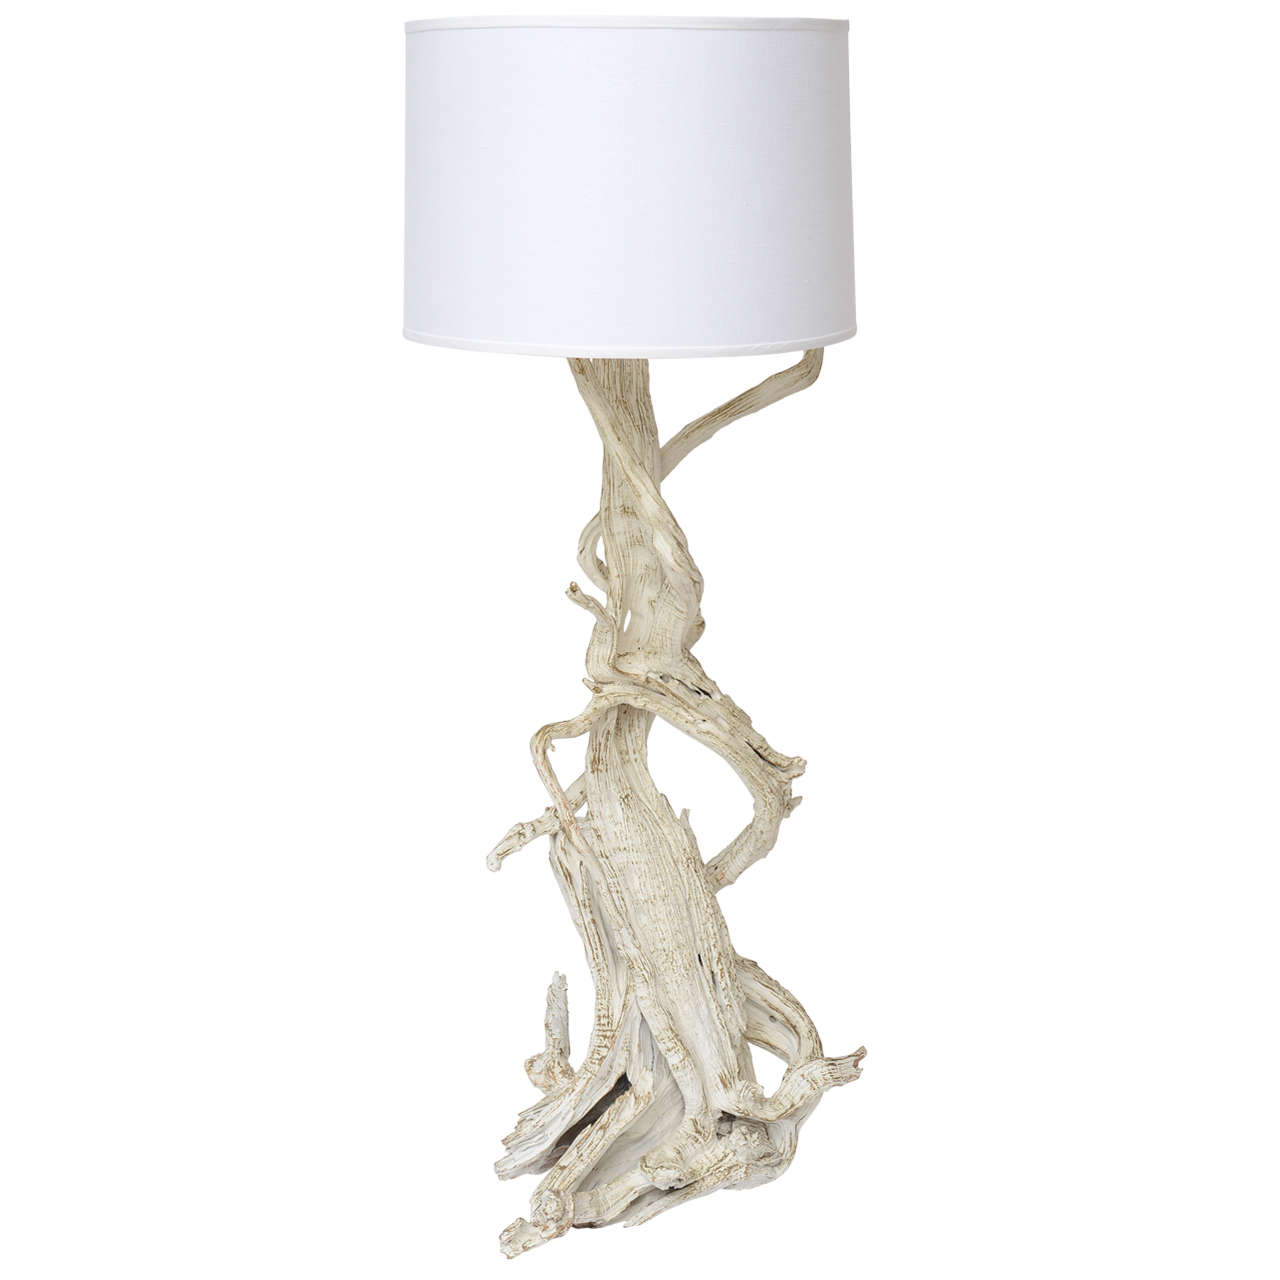 charming driftwood floor lamp in white theme for inspiring home furniture ideas